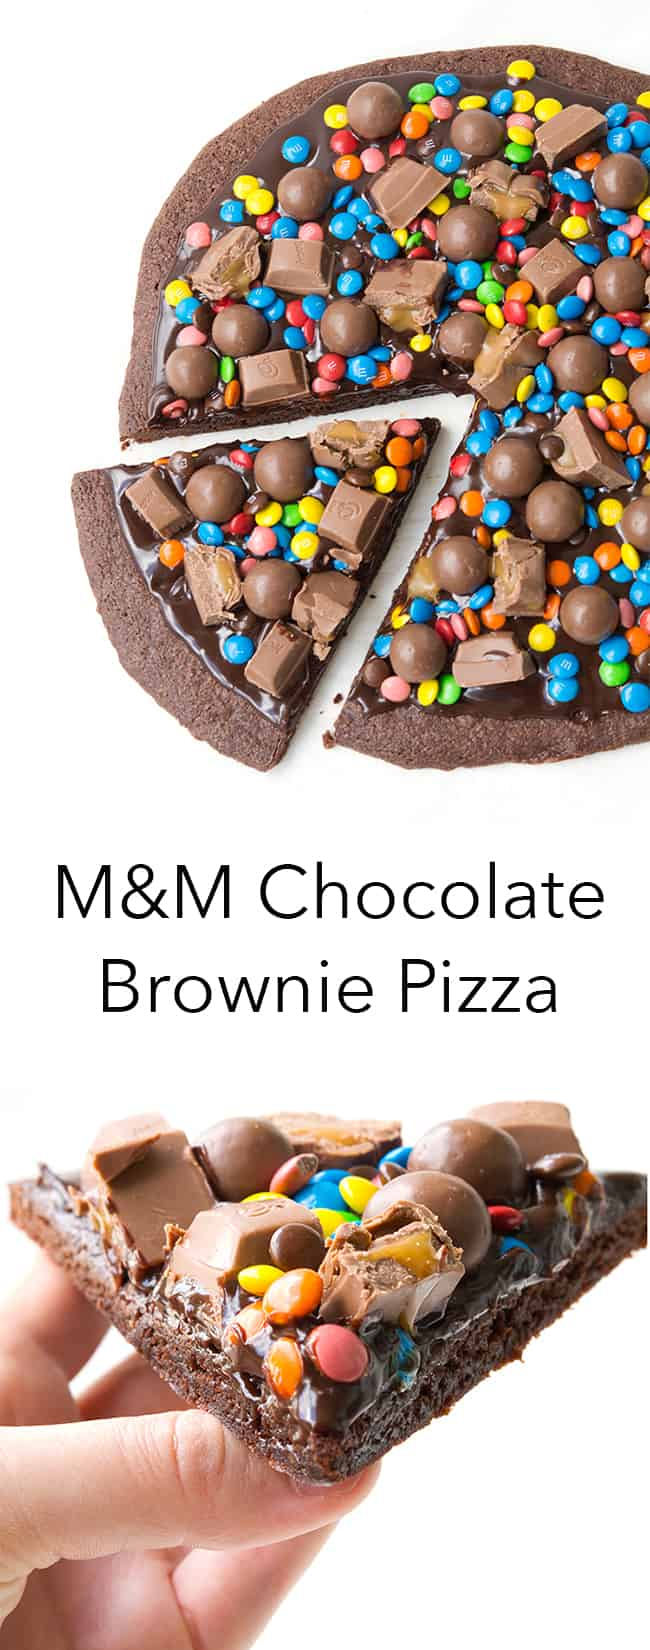 M&M Chocolate Brownie Pizza | Sweetest Menu